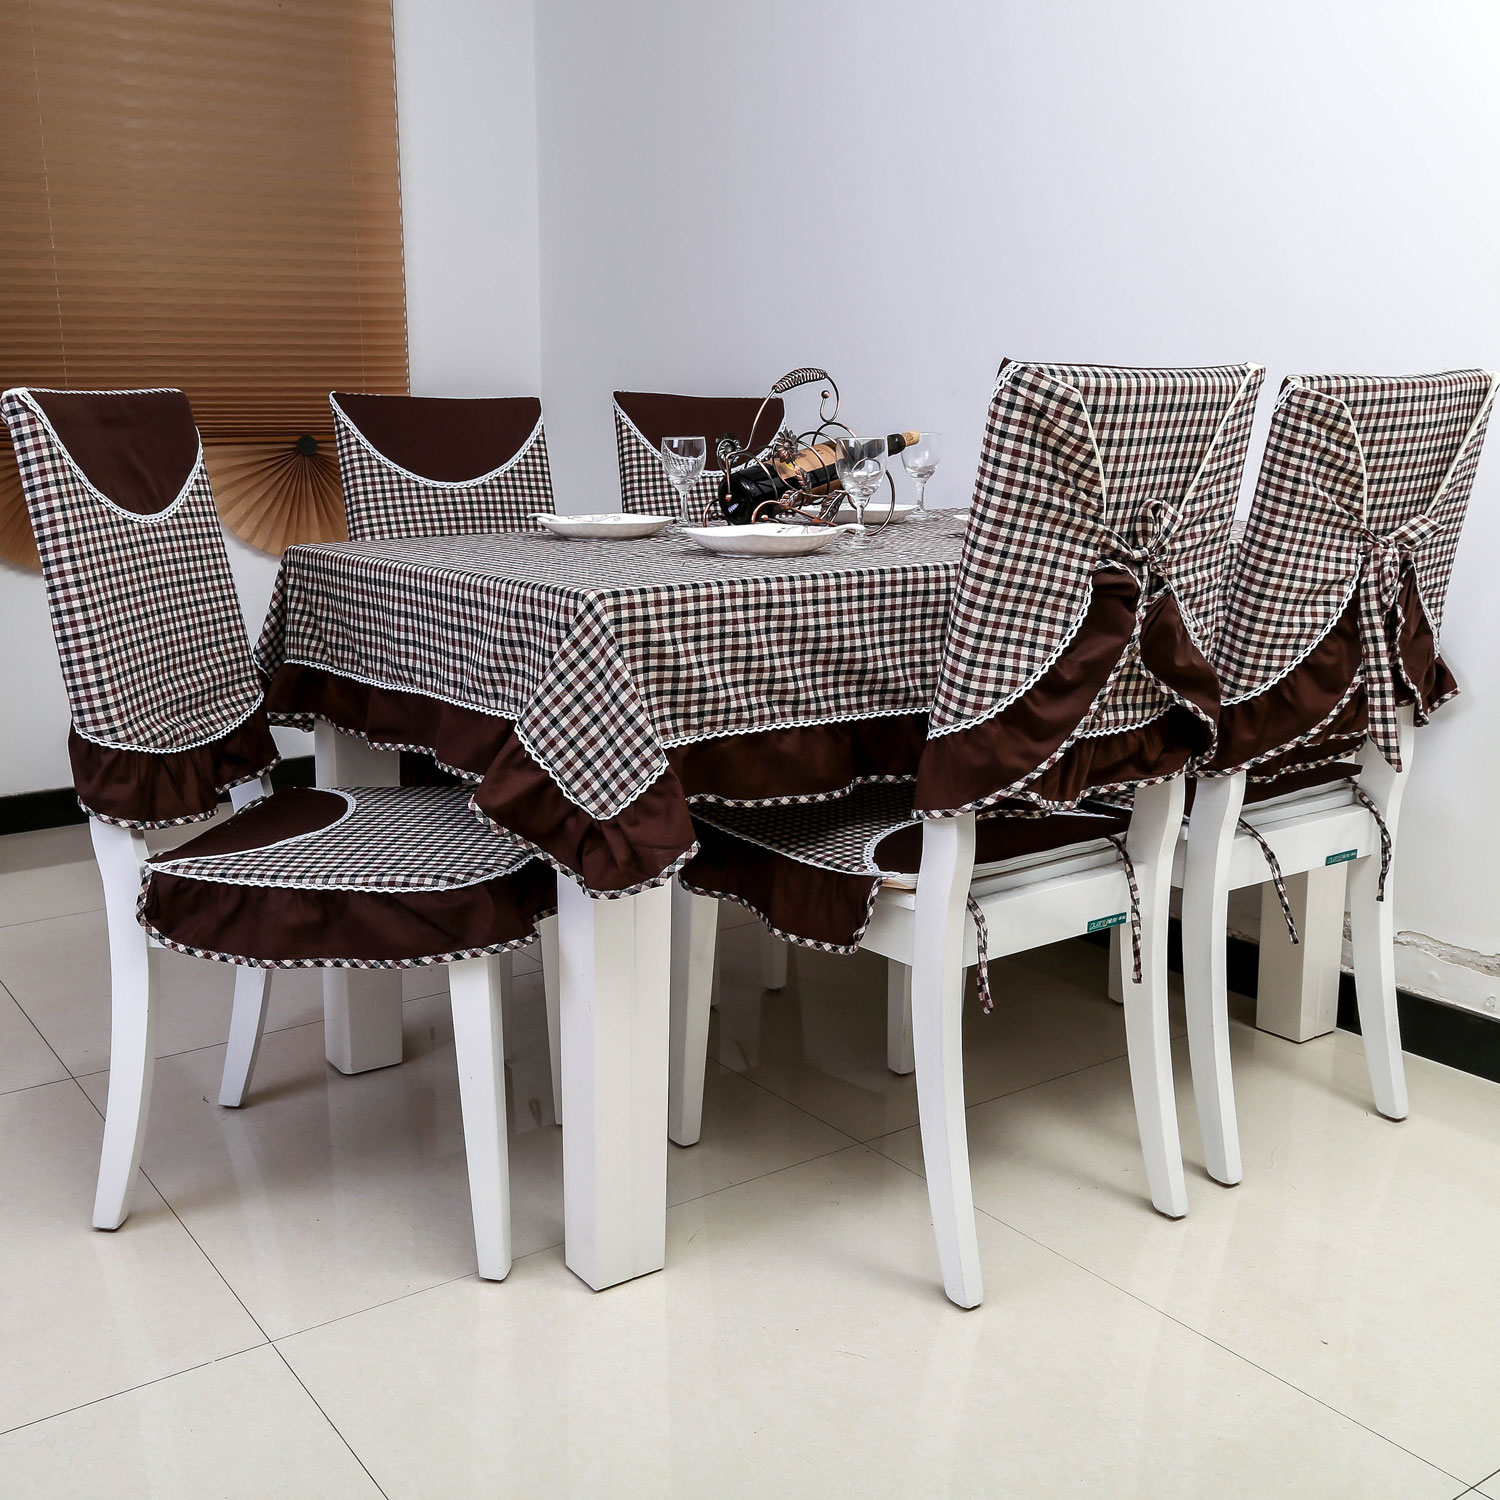 Xin instrument pastoral plaid table cloth tablecloth tea table cloth tablecloth thick for dealing with issues such as price pro grab it